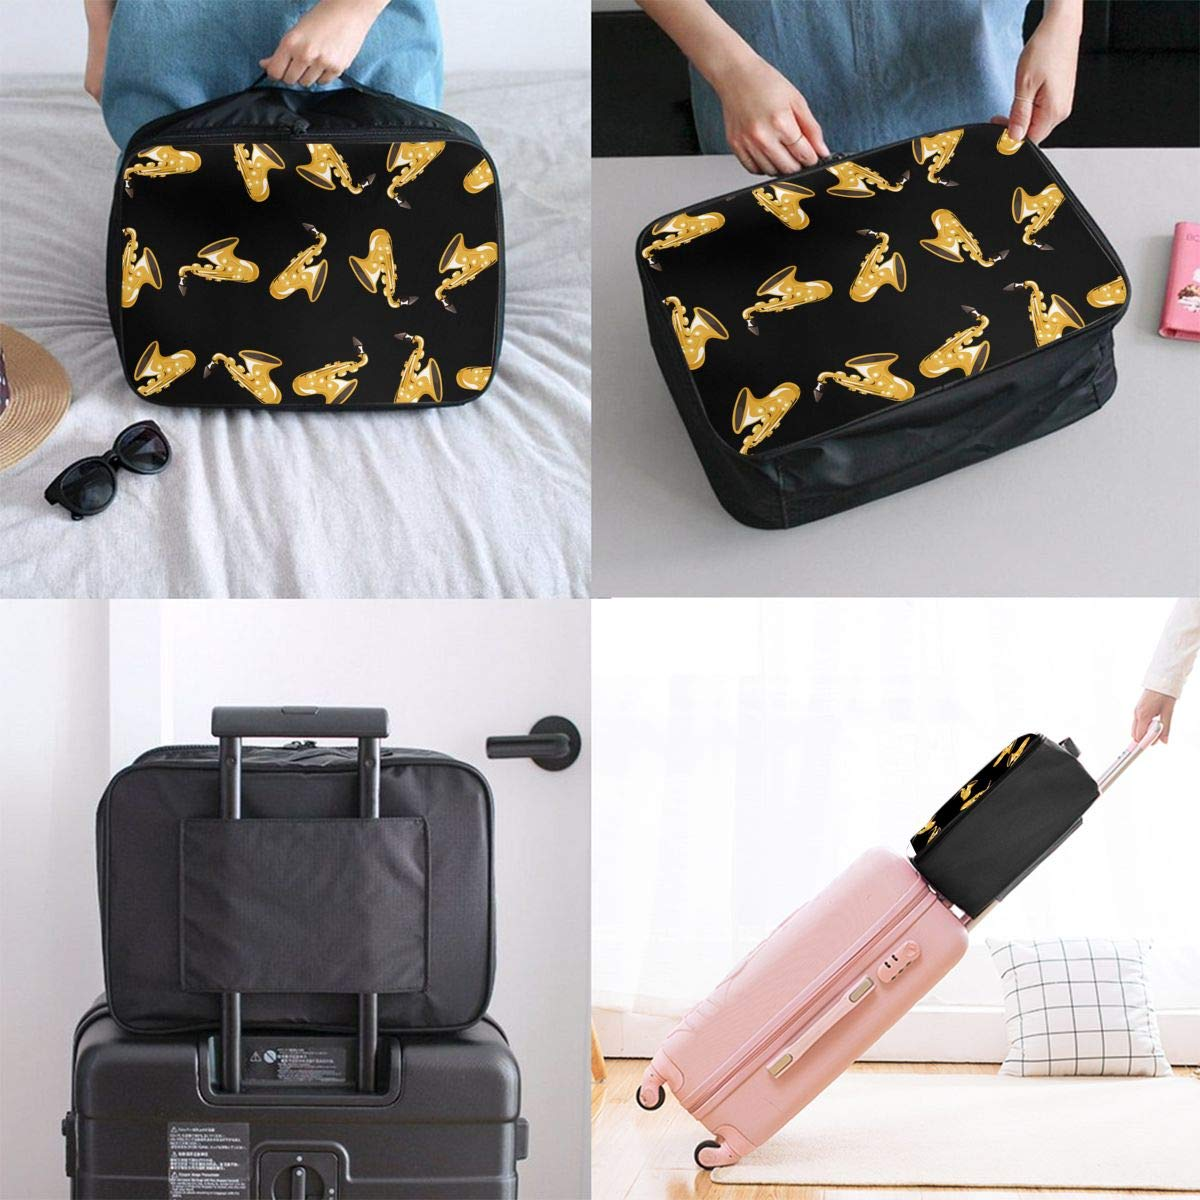 YueLJB Golden Saxophone Pattern Lightweight Large Capacity Portable Luggage Bag Travel Duffel Bag Storage Carry Luggage Duffle Tote Bag